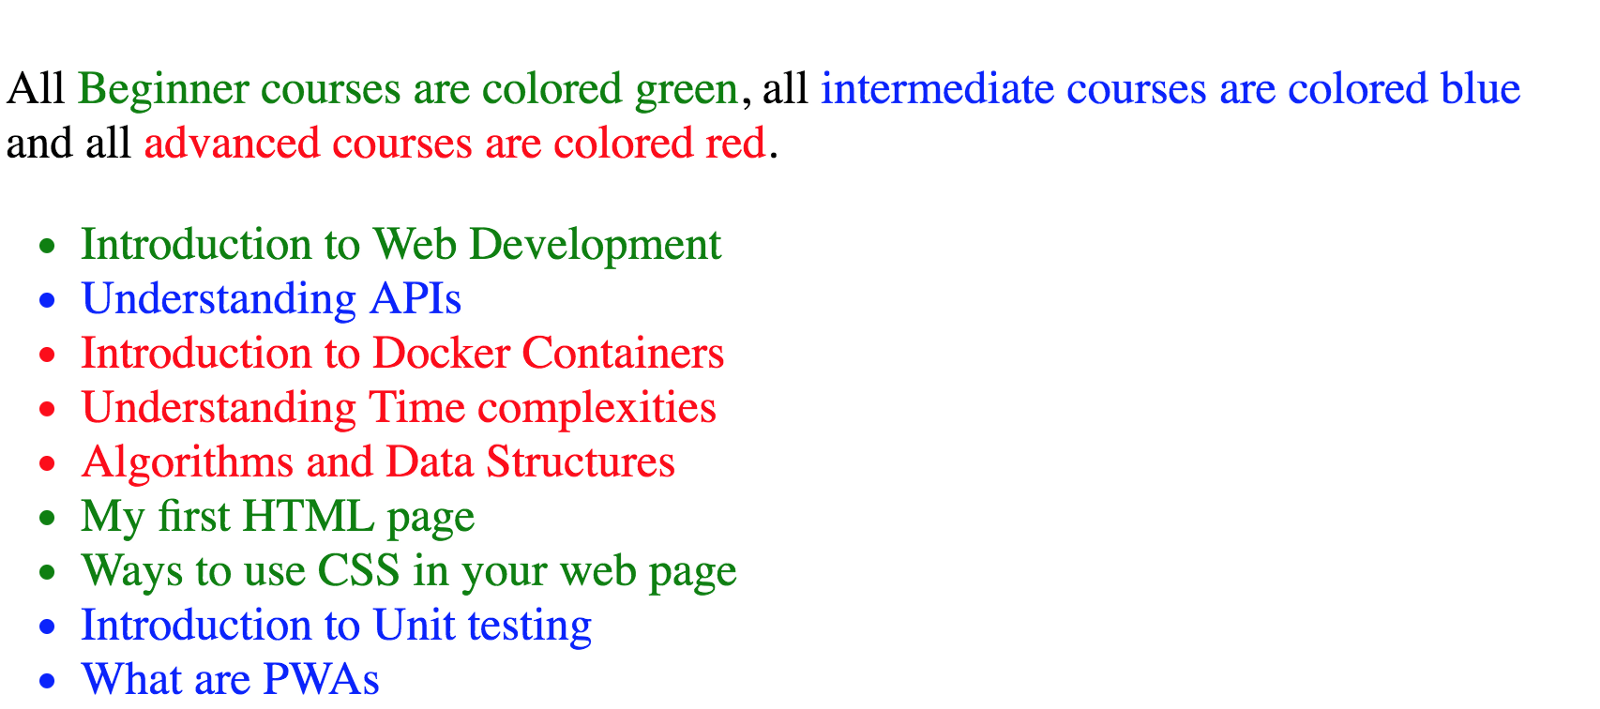 The same paragraph as above, now with a list of courses showing in green, blue or red based on their level.